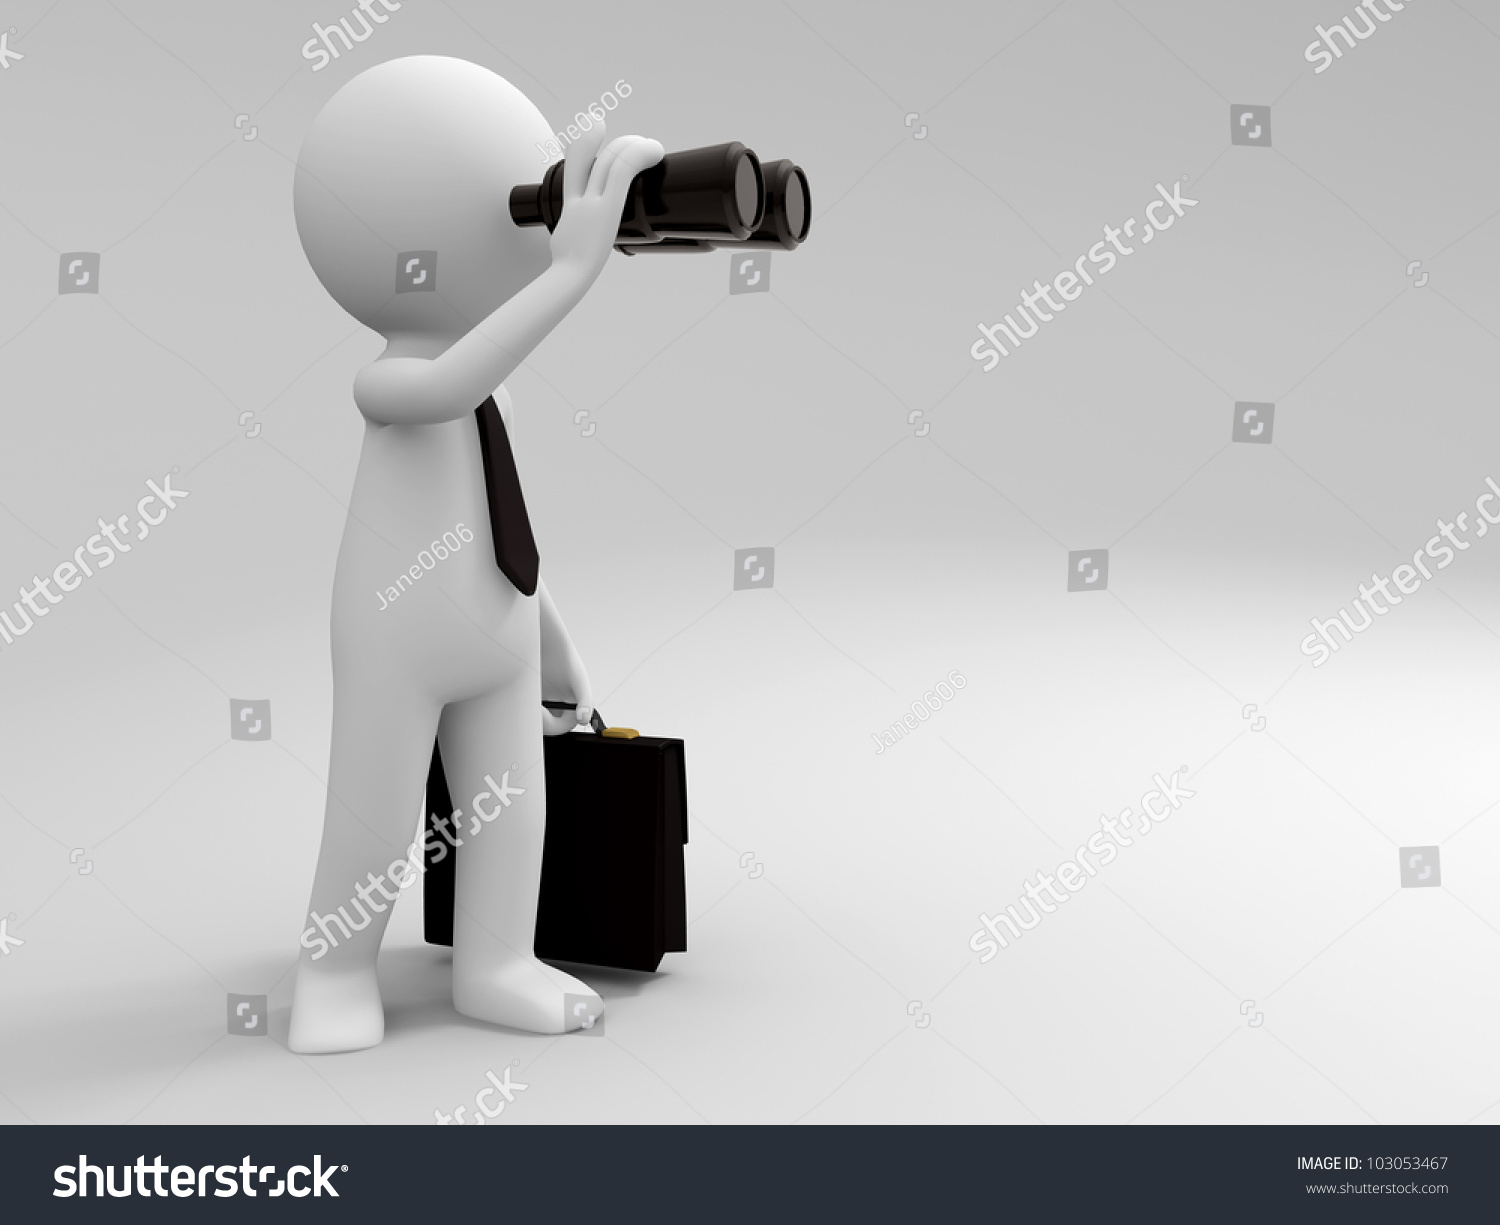 Telescope/A 3d People Is Using The Telescope Stock Photo